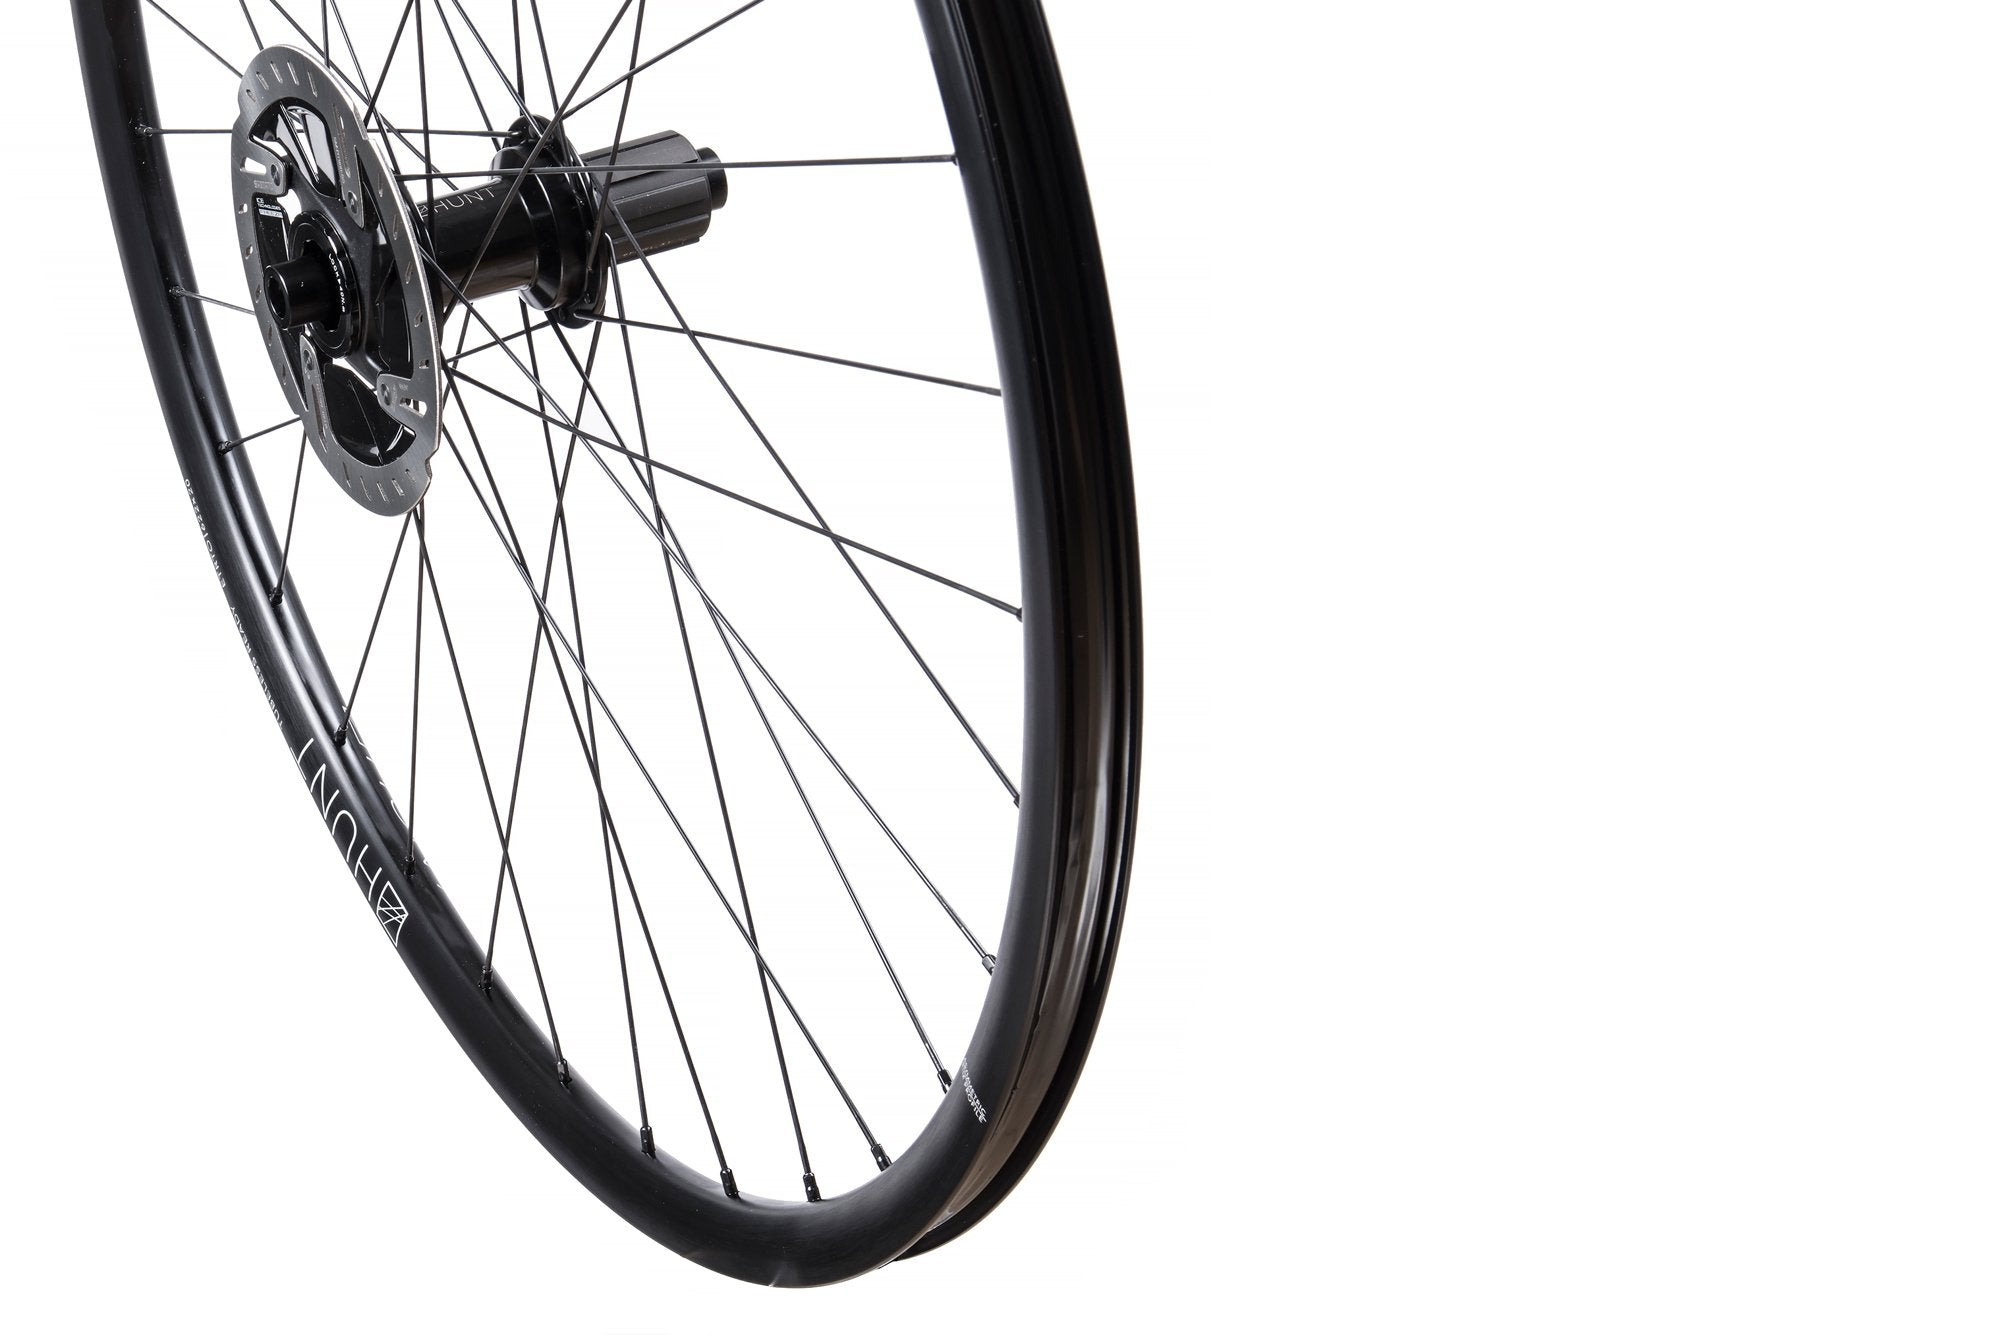 HUNT 4 Season Superdura Disc Wheelset